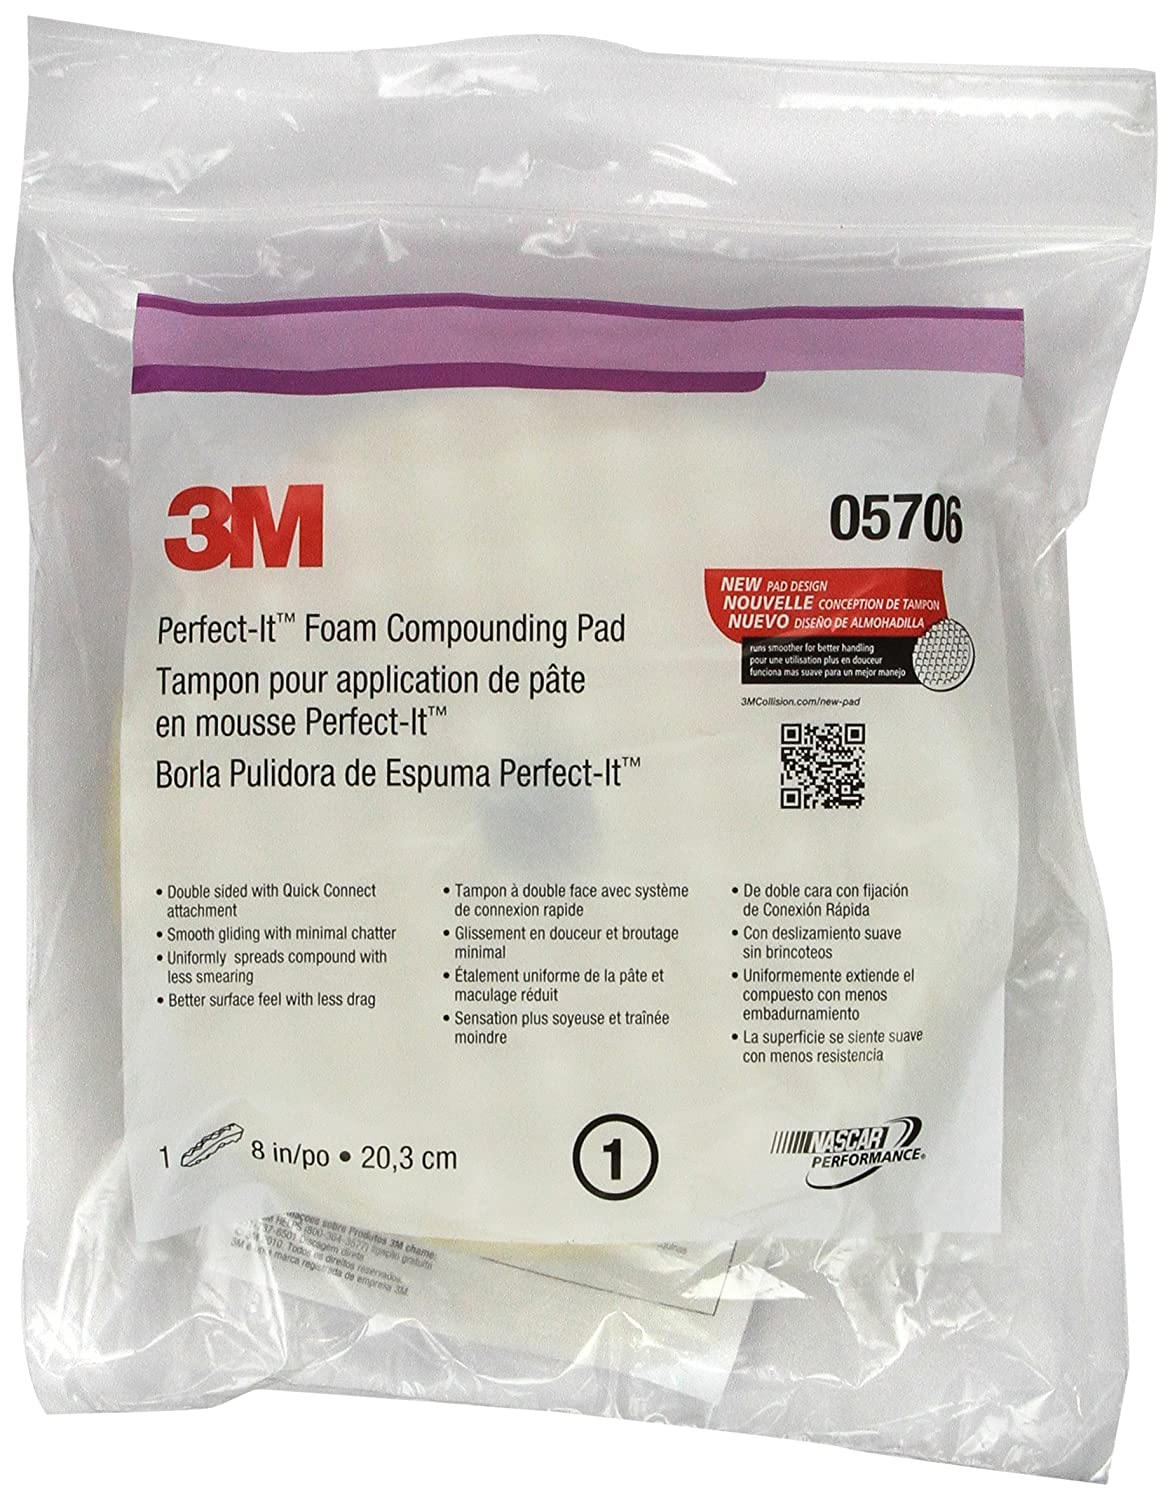 Amazon.com: 3M 05706 Perfect-It 8-Inches Foam Compounding Pad: Automotive